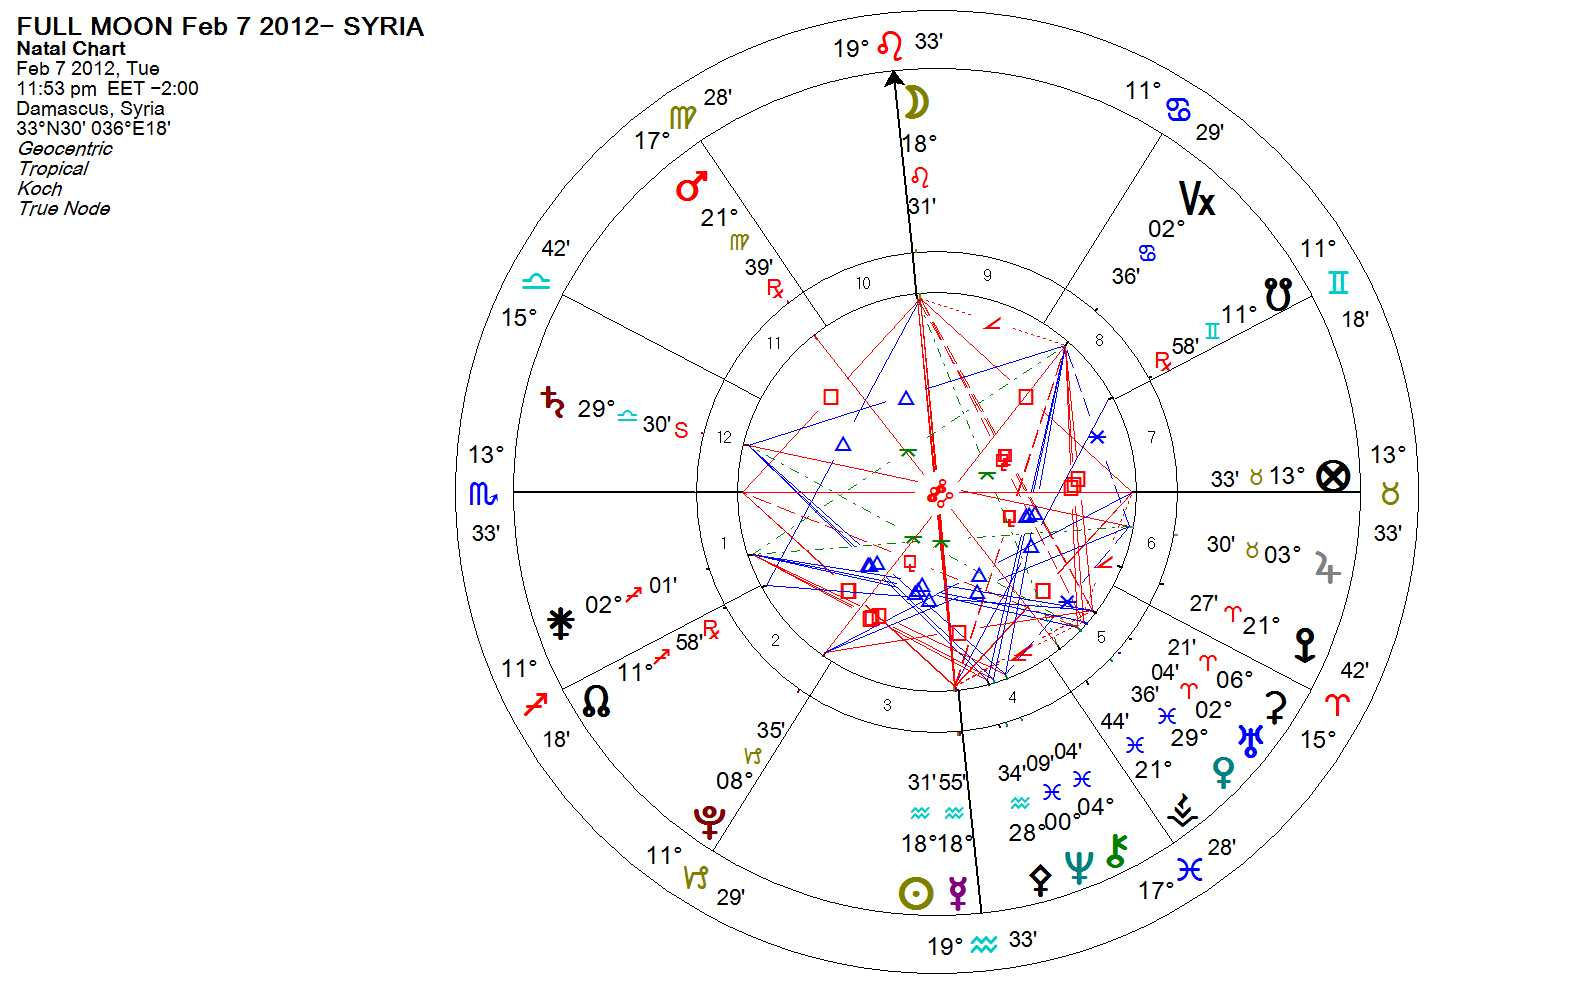 Starcatsastrologys blog just another wordpress weblog and heres the february 7 2012 full moon chart set for 1134 pm damascus syria note the full moon conjunct the mc then link that to syrias south node nvjuhfo Image collections